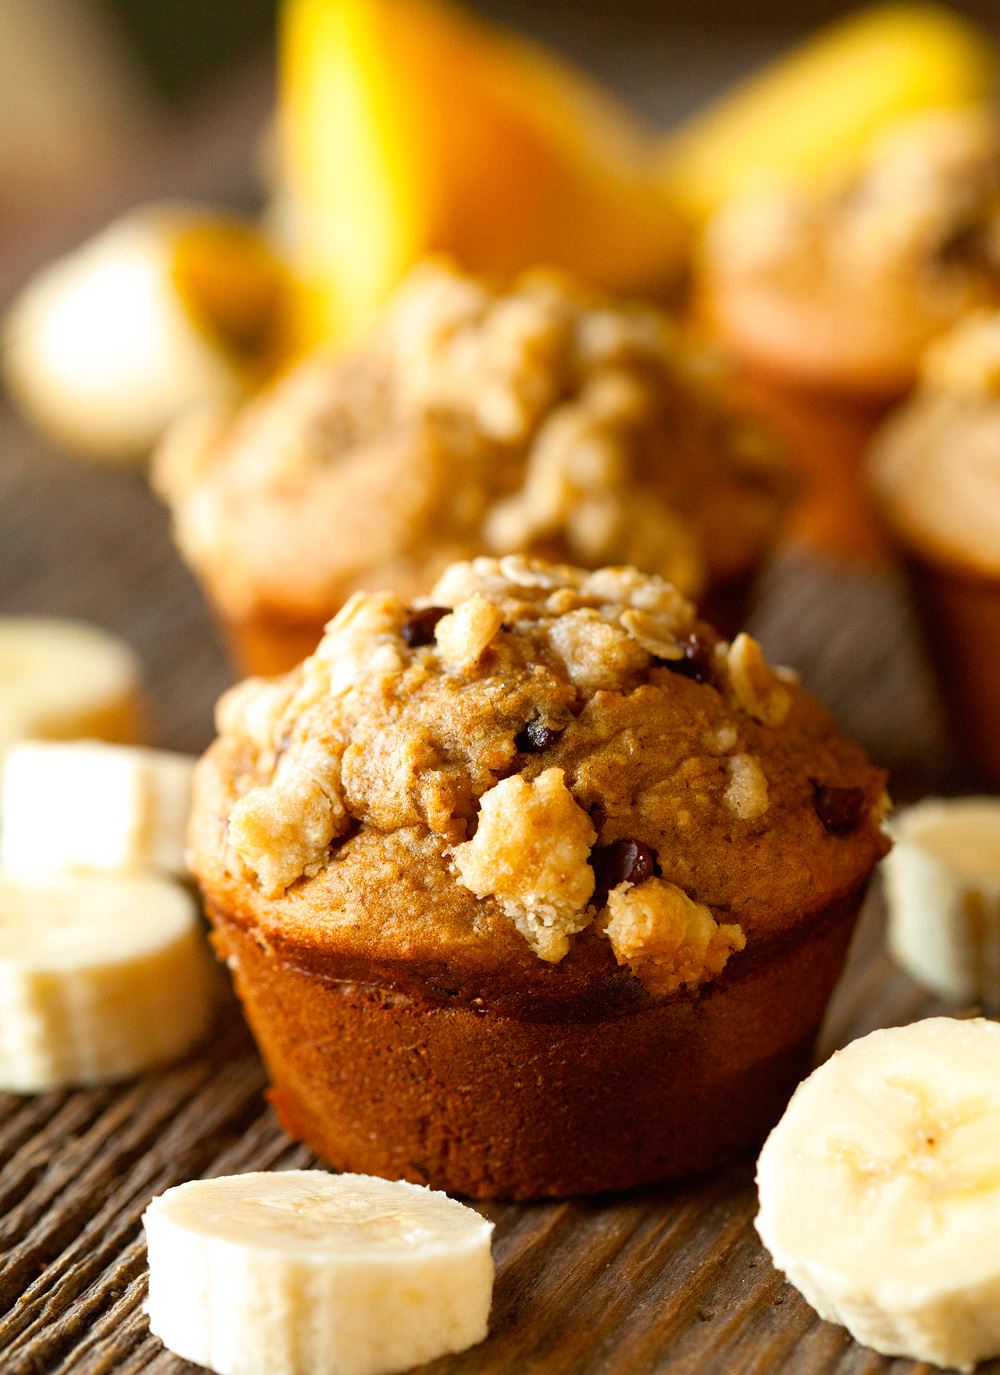 caramelized-banana-and-peanut-butter-oat-streusel-muffins